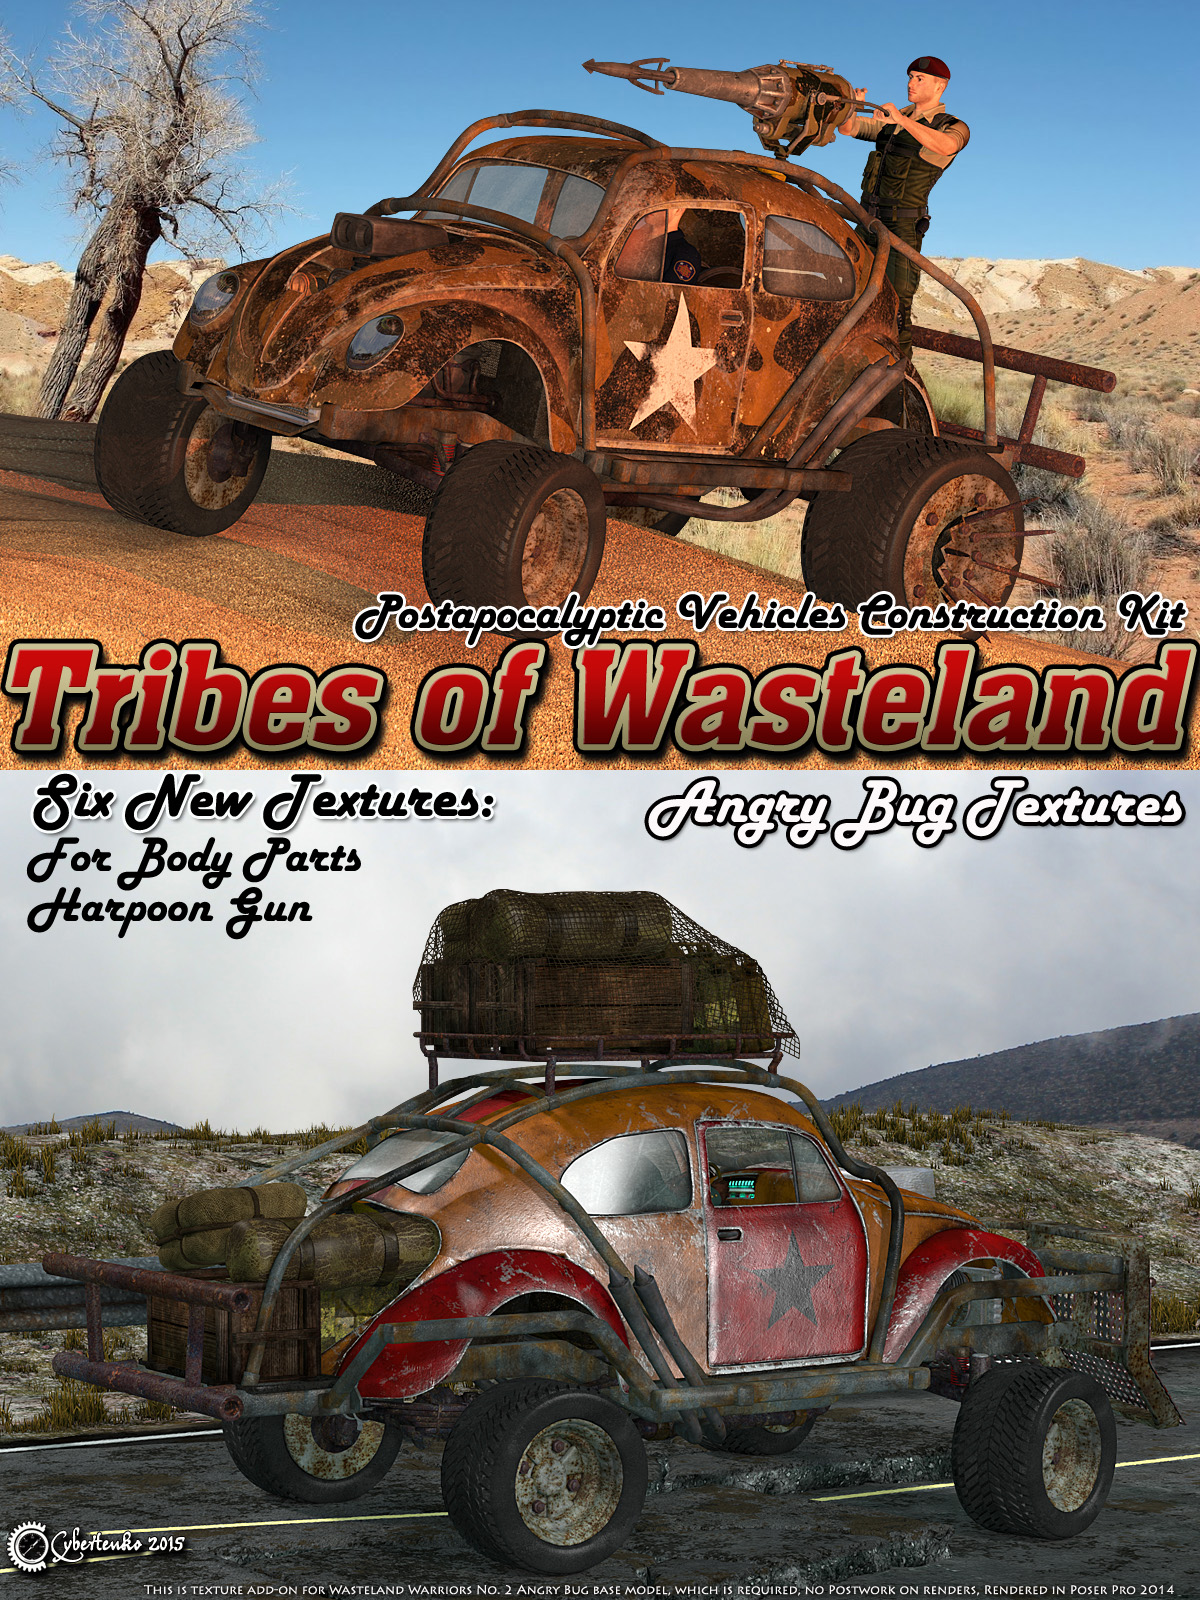 Tribes of Wasteland - Angry Bug Textures